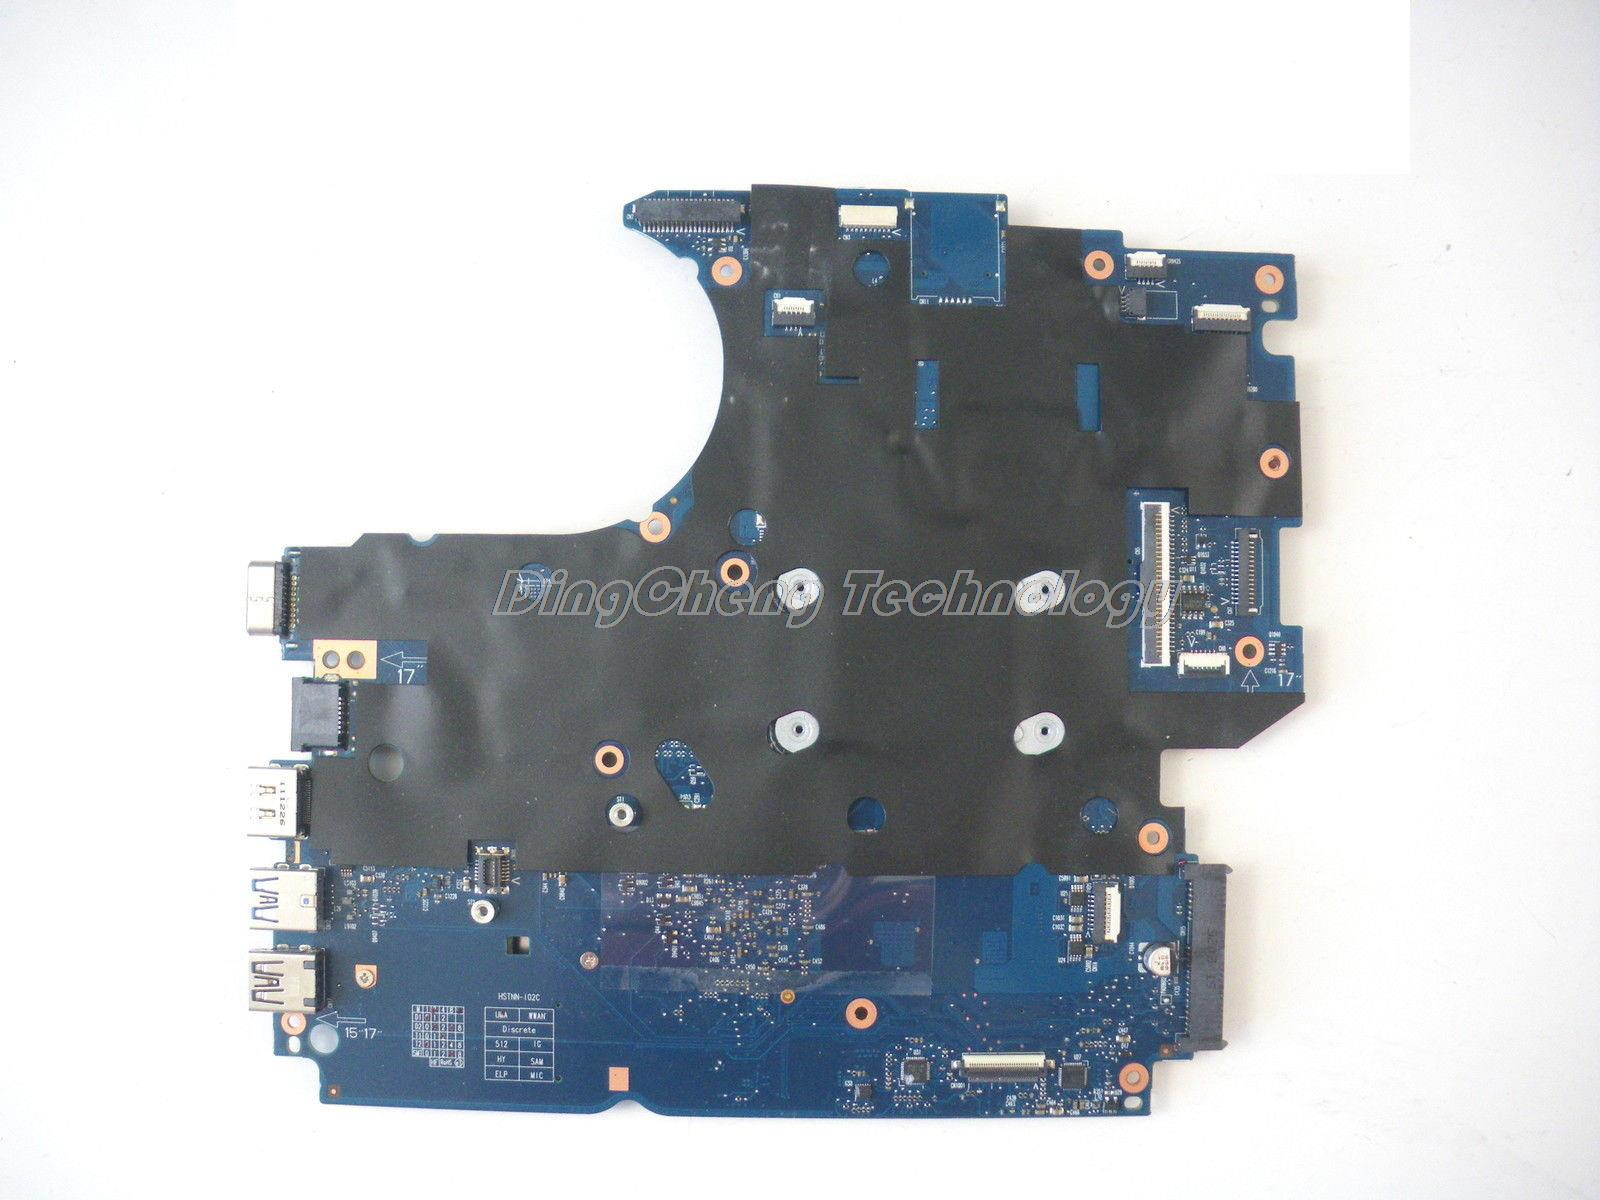 SHELI  laptop Motherboard For HP 4535s 654308-001 6050A2426501-MB-A01 integrated graphics card 100% fully tested mbecu01001 motherboard for acer travelmate 5230 5330 5330g mb ecu01 001 homa mb 48 4z401 01m tested good